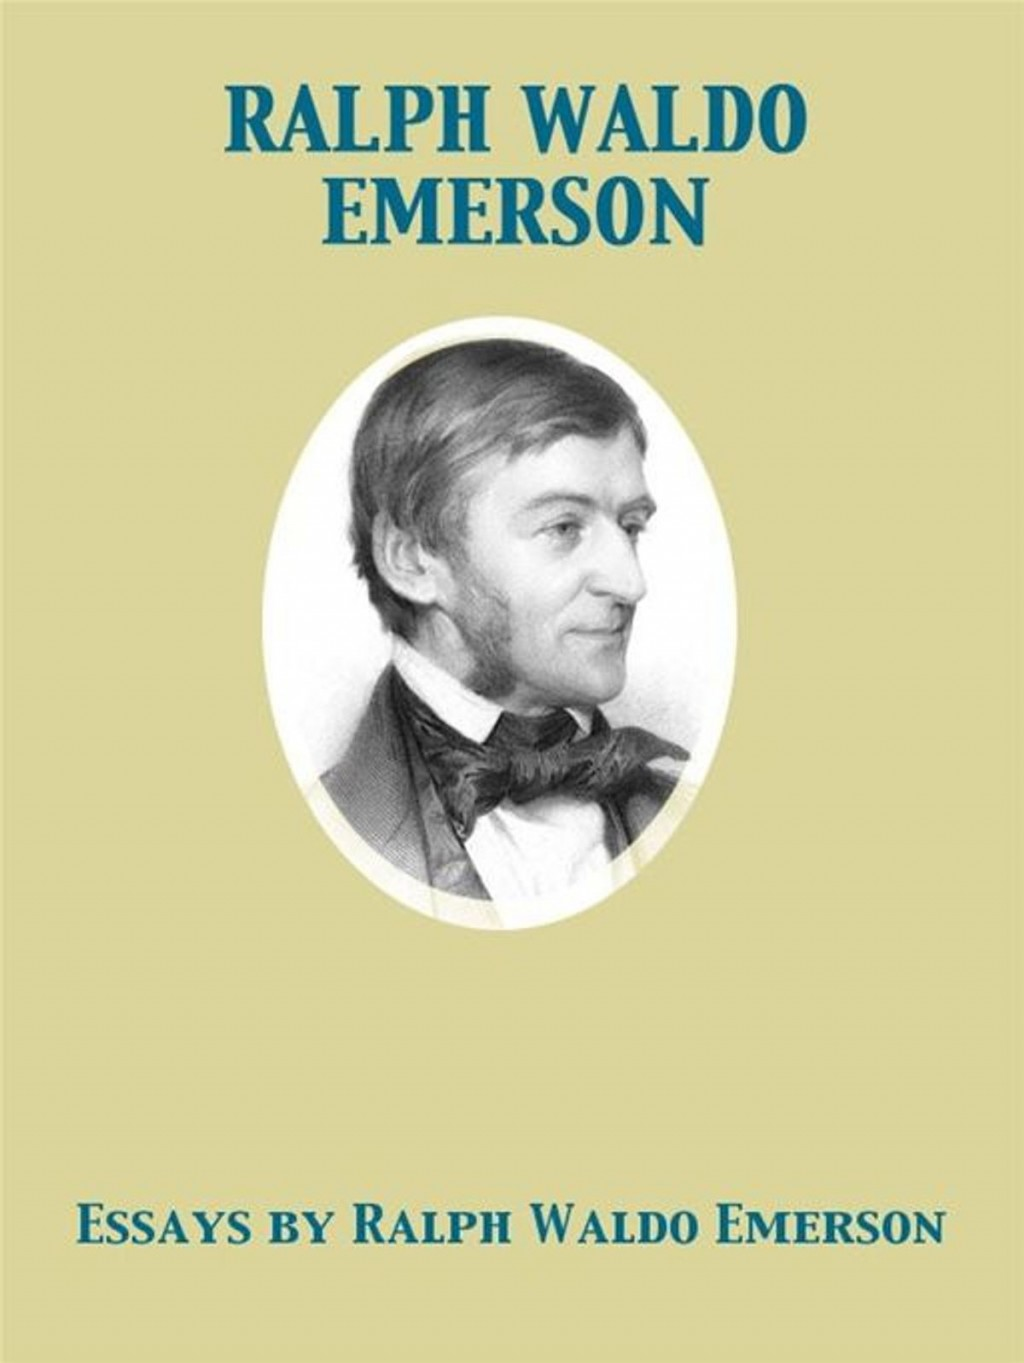 008 Emerson Essays By Ralph Waldo Essay Dreaded Pdf First Series Summary Nature Large